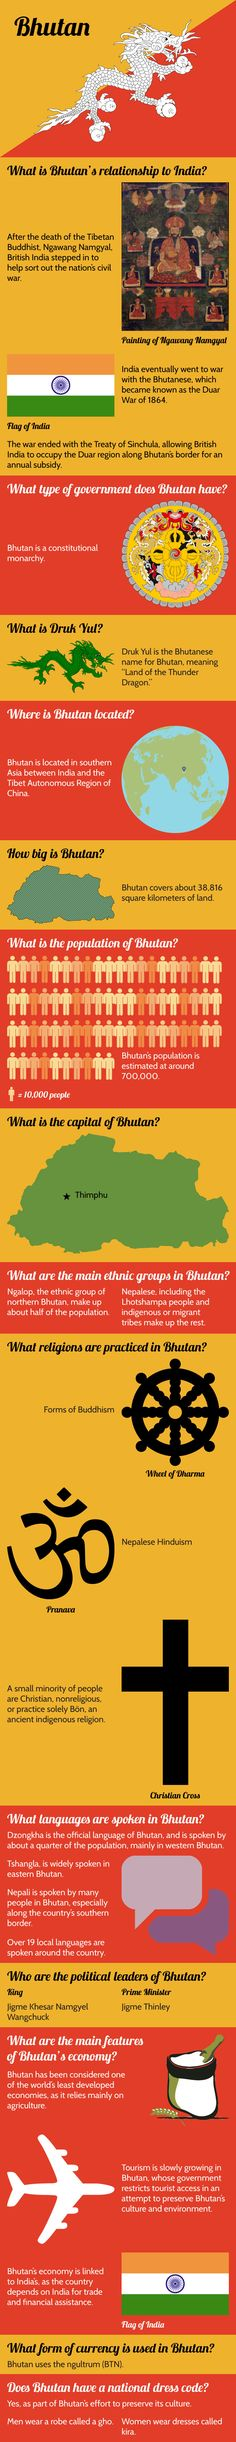 Infographic of #Bhutan Fast Facts http://www.mapsofworld.com/pages/fast-facts/infographic-of-bhutan-fast-facts/